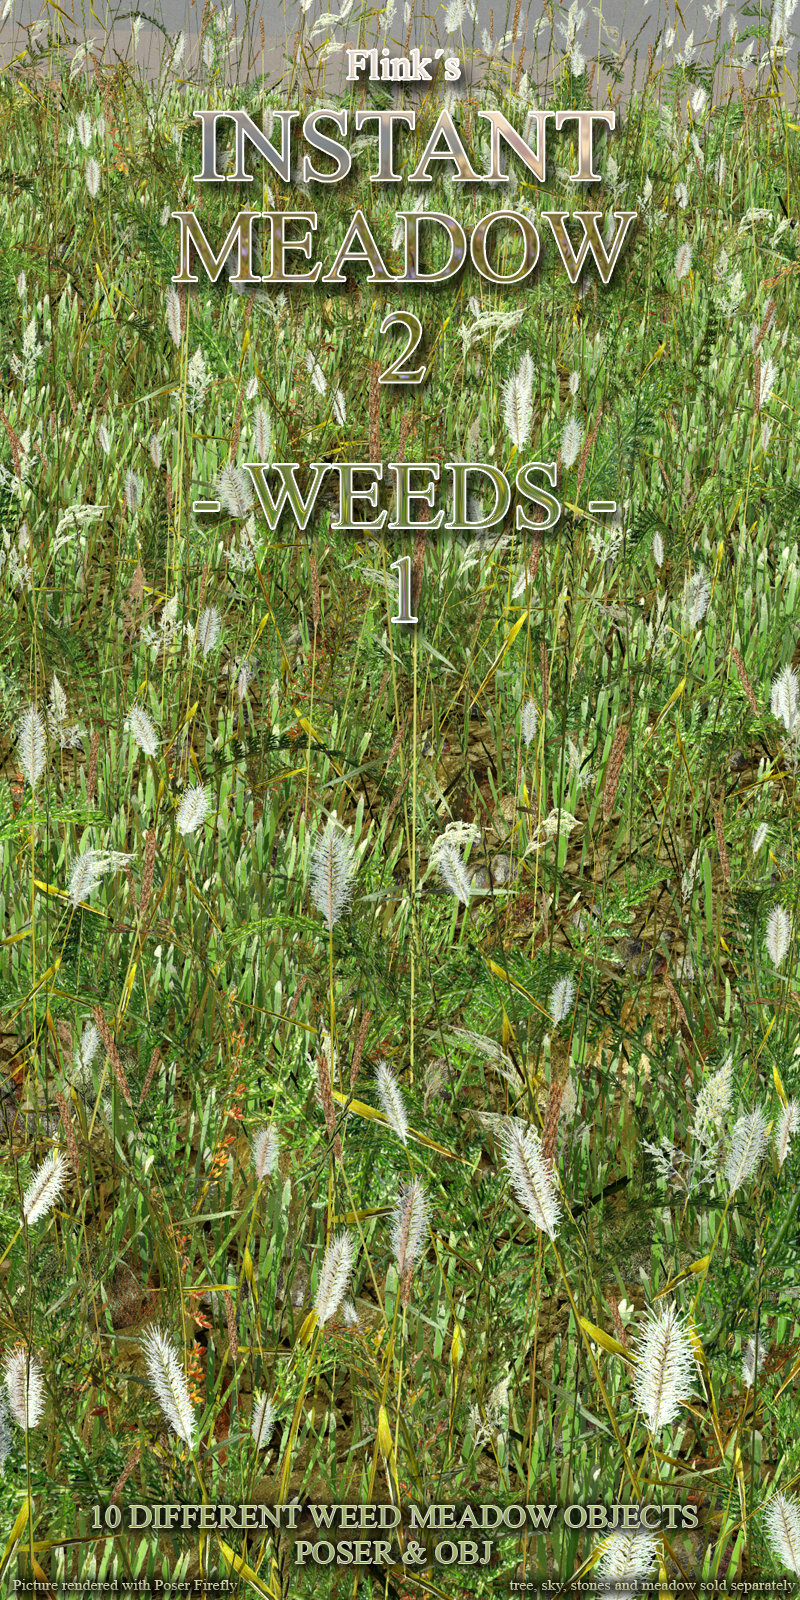 Flinks Instant Meadow 2 - Weeds 1